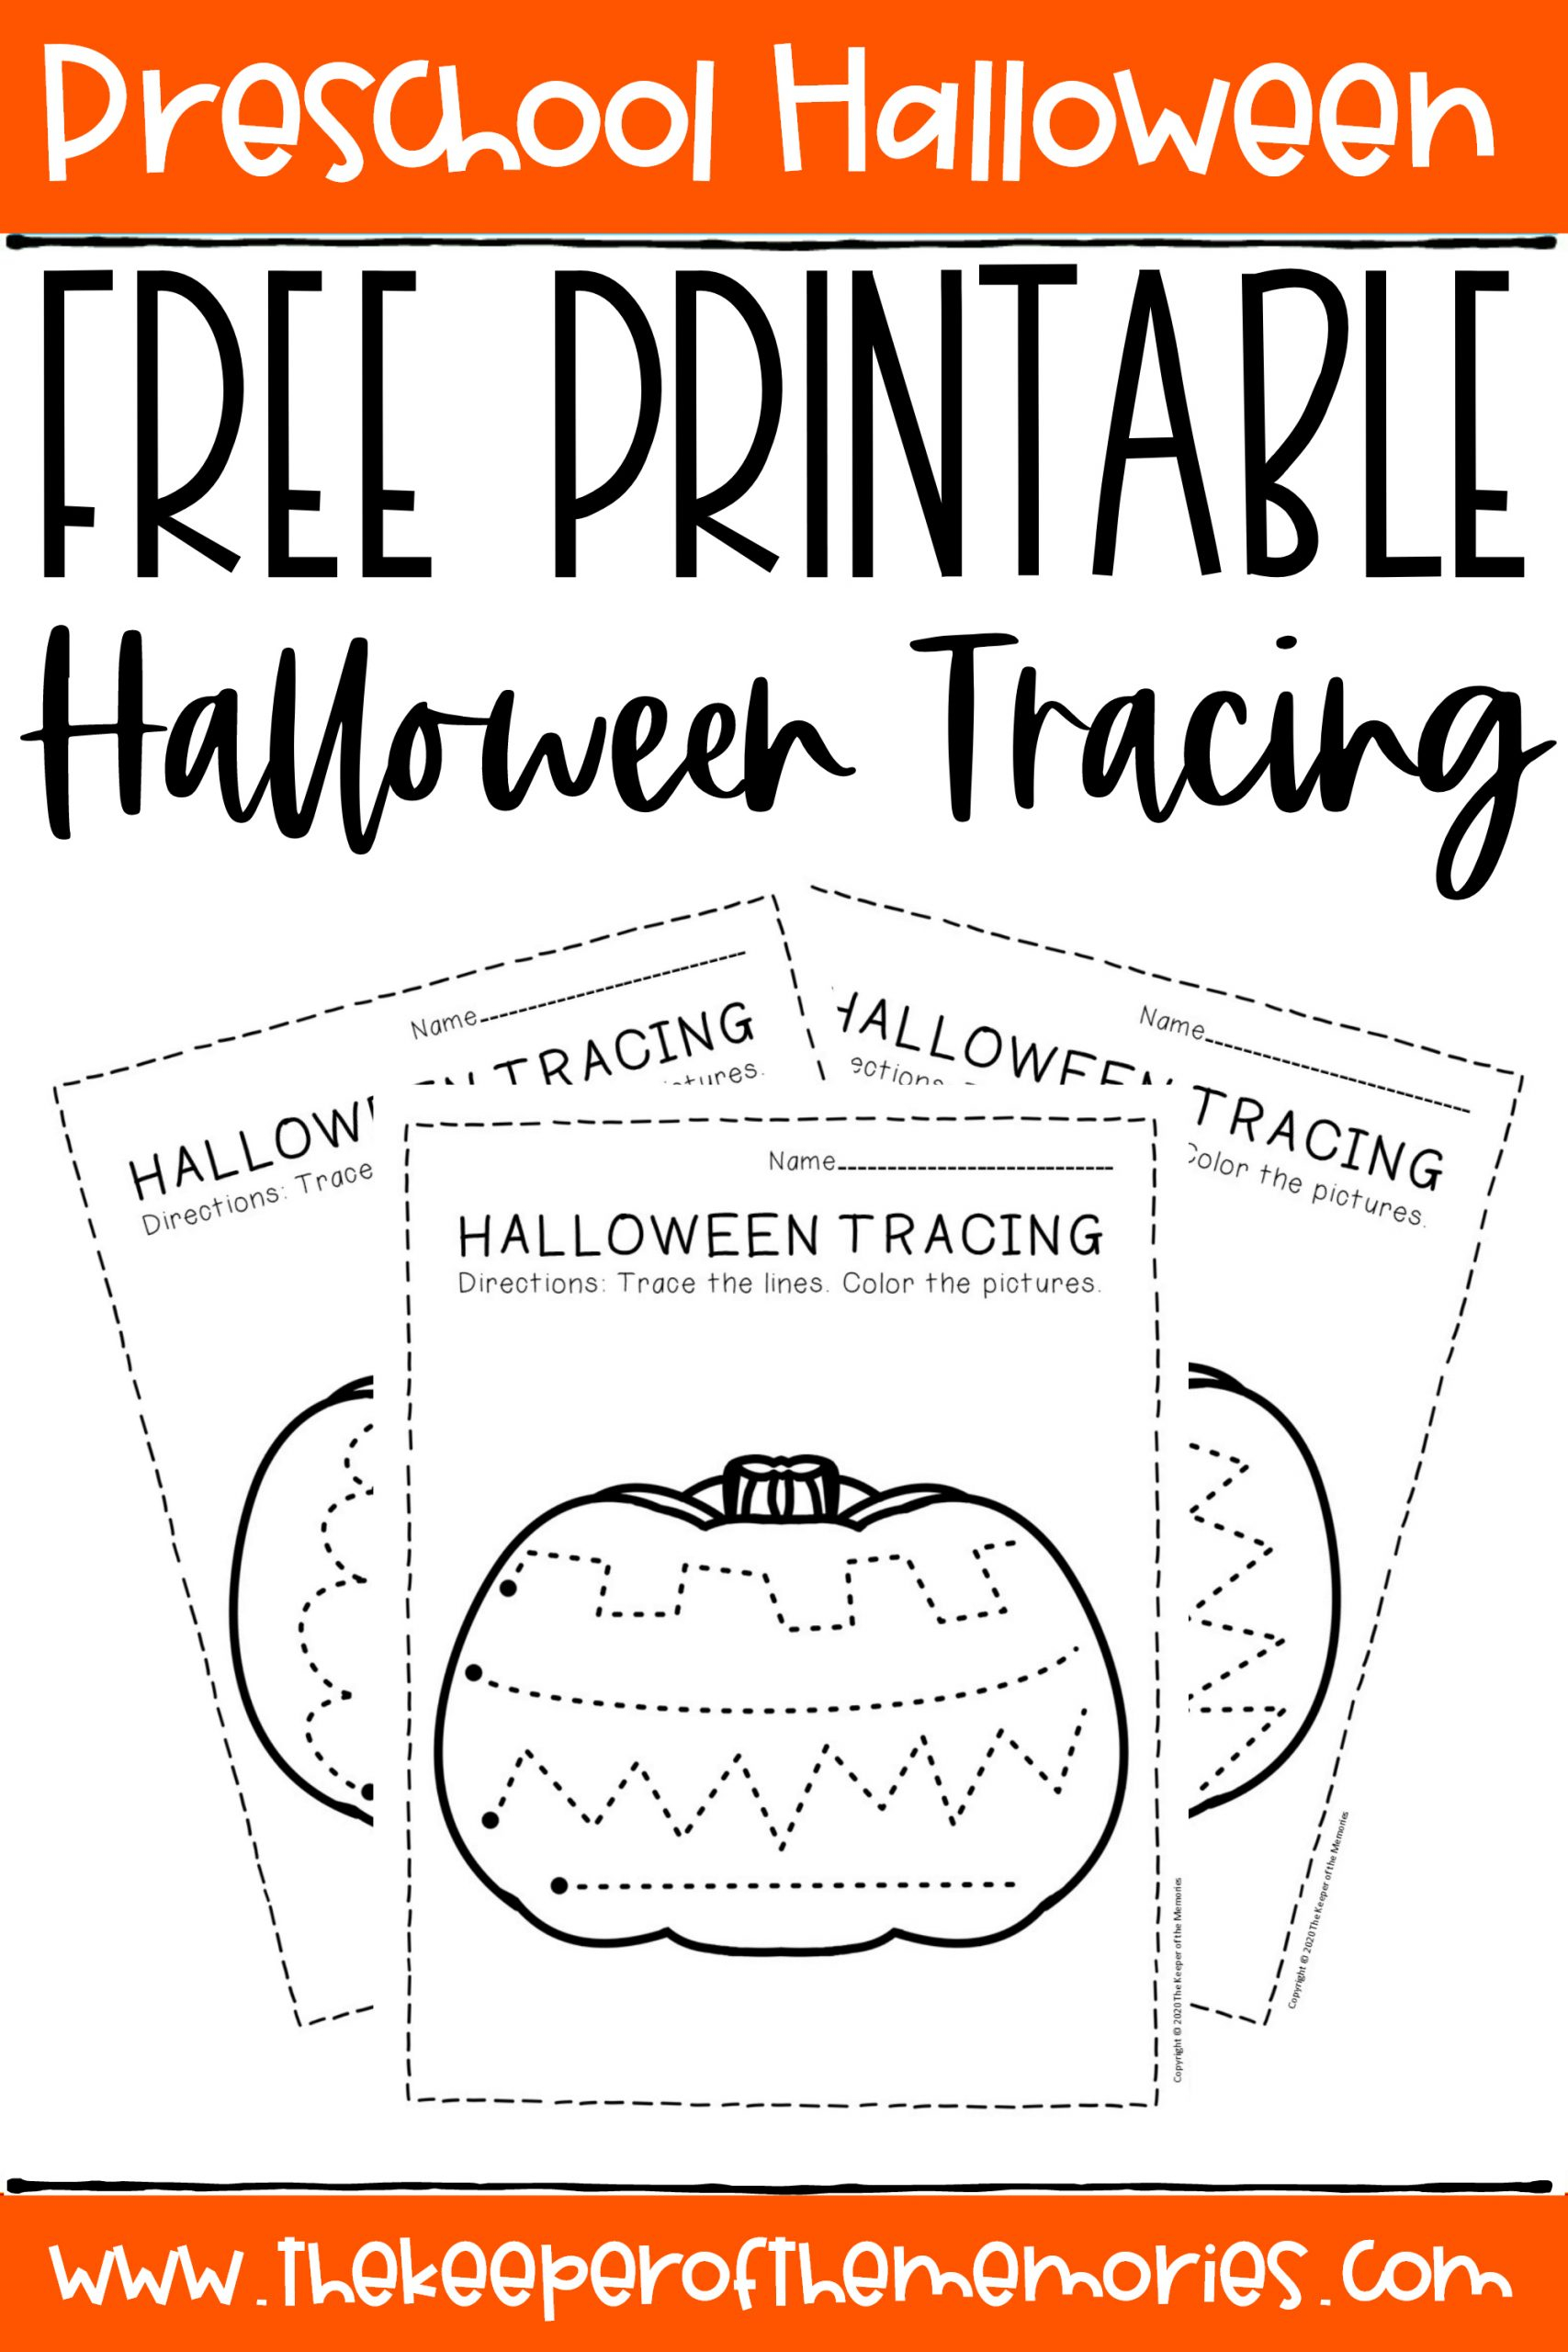 Free Printable Tracing Halloween Preschool Worksheets - The